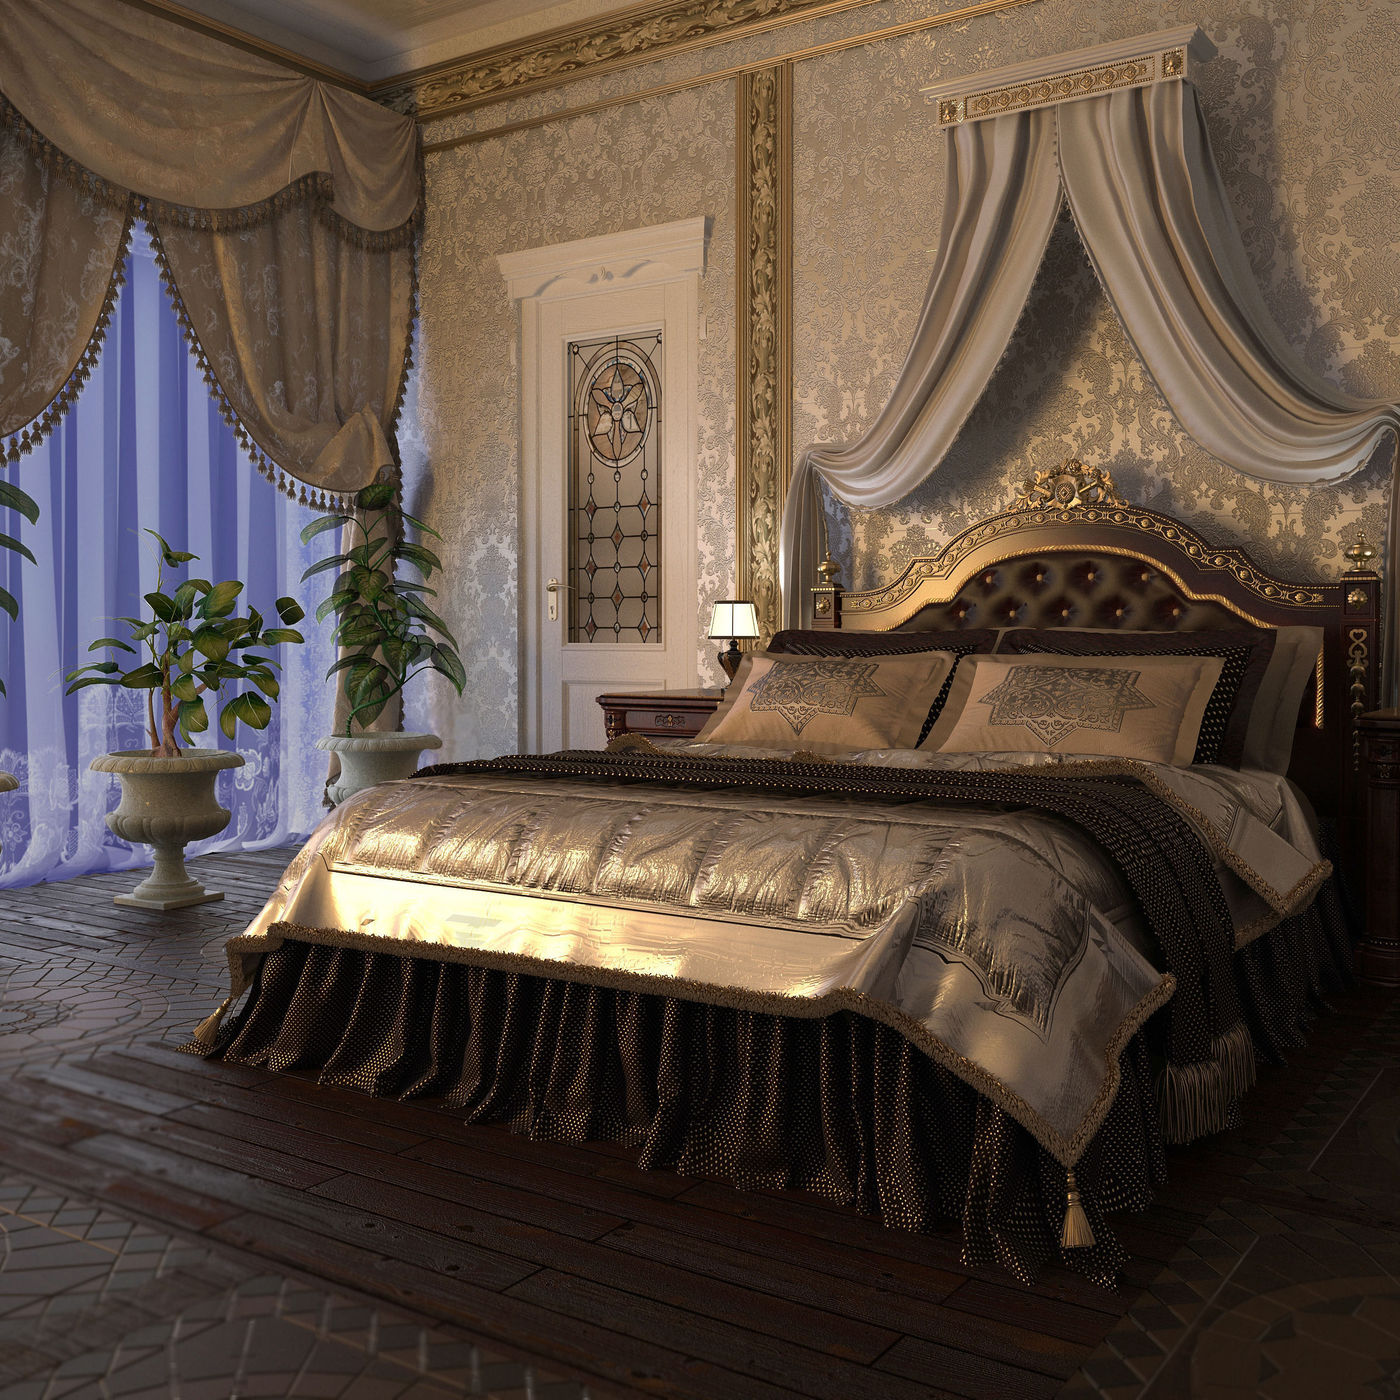 Classic bedroom in the evening light